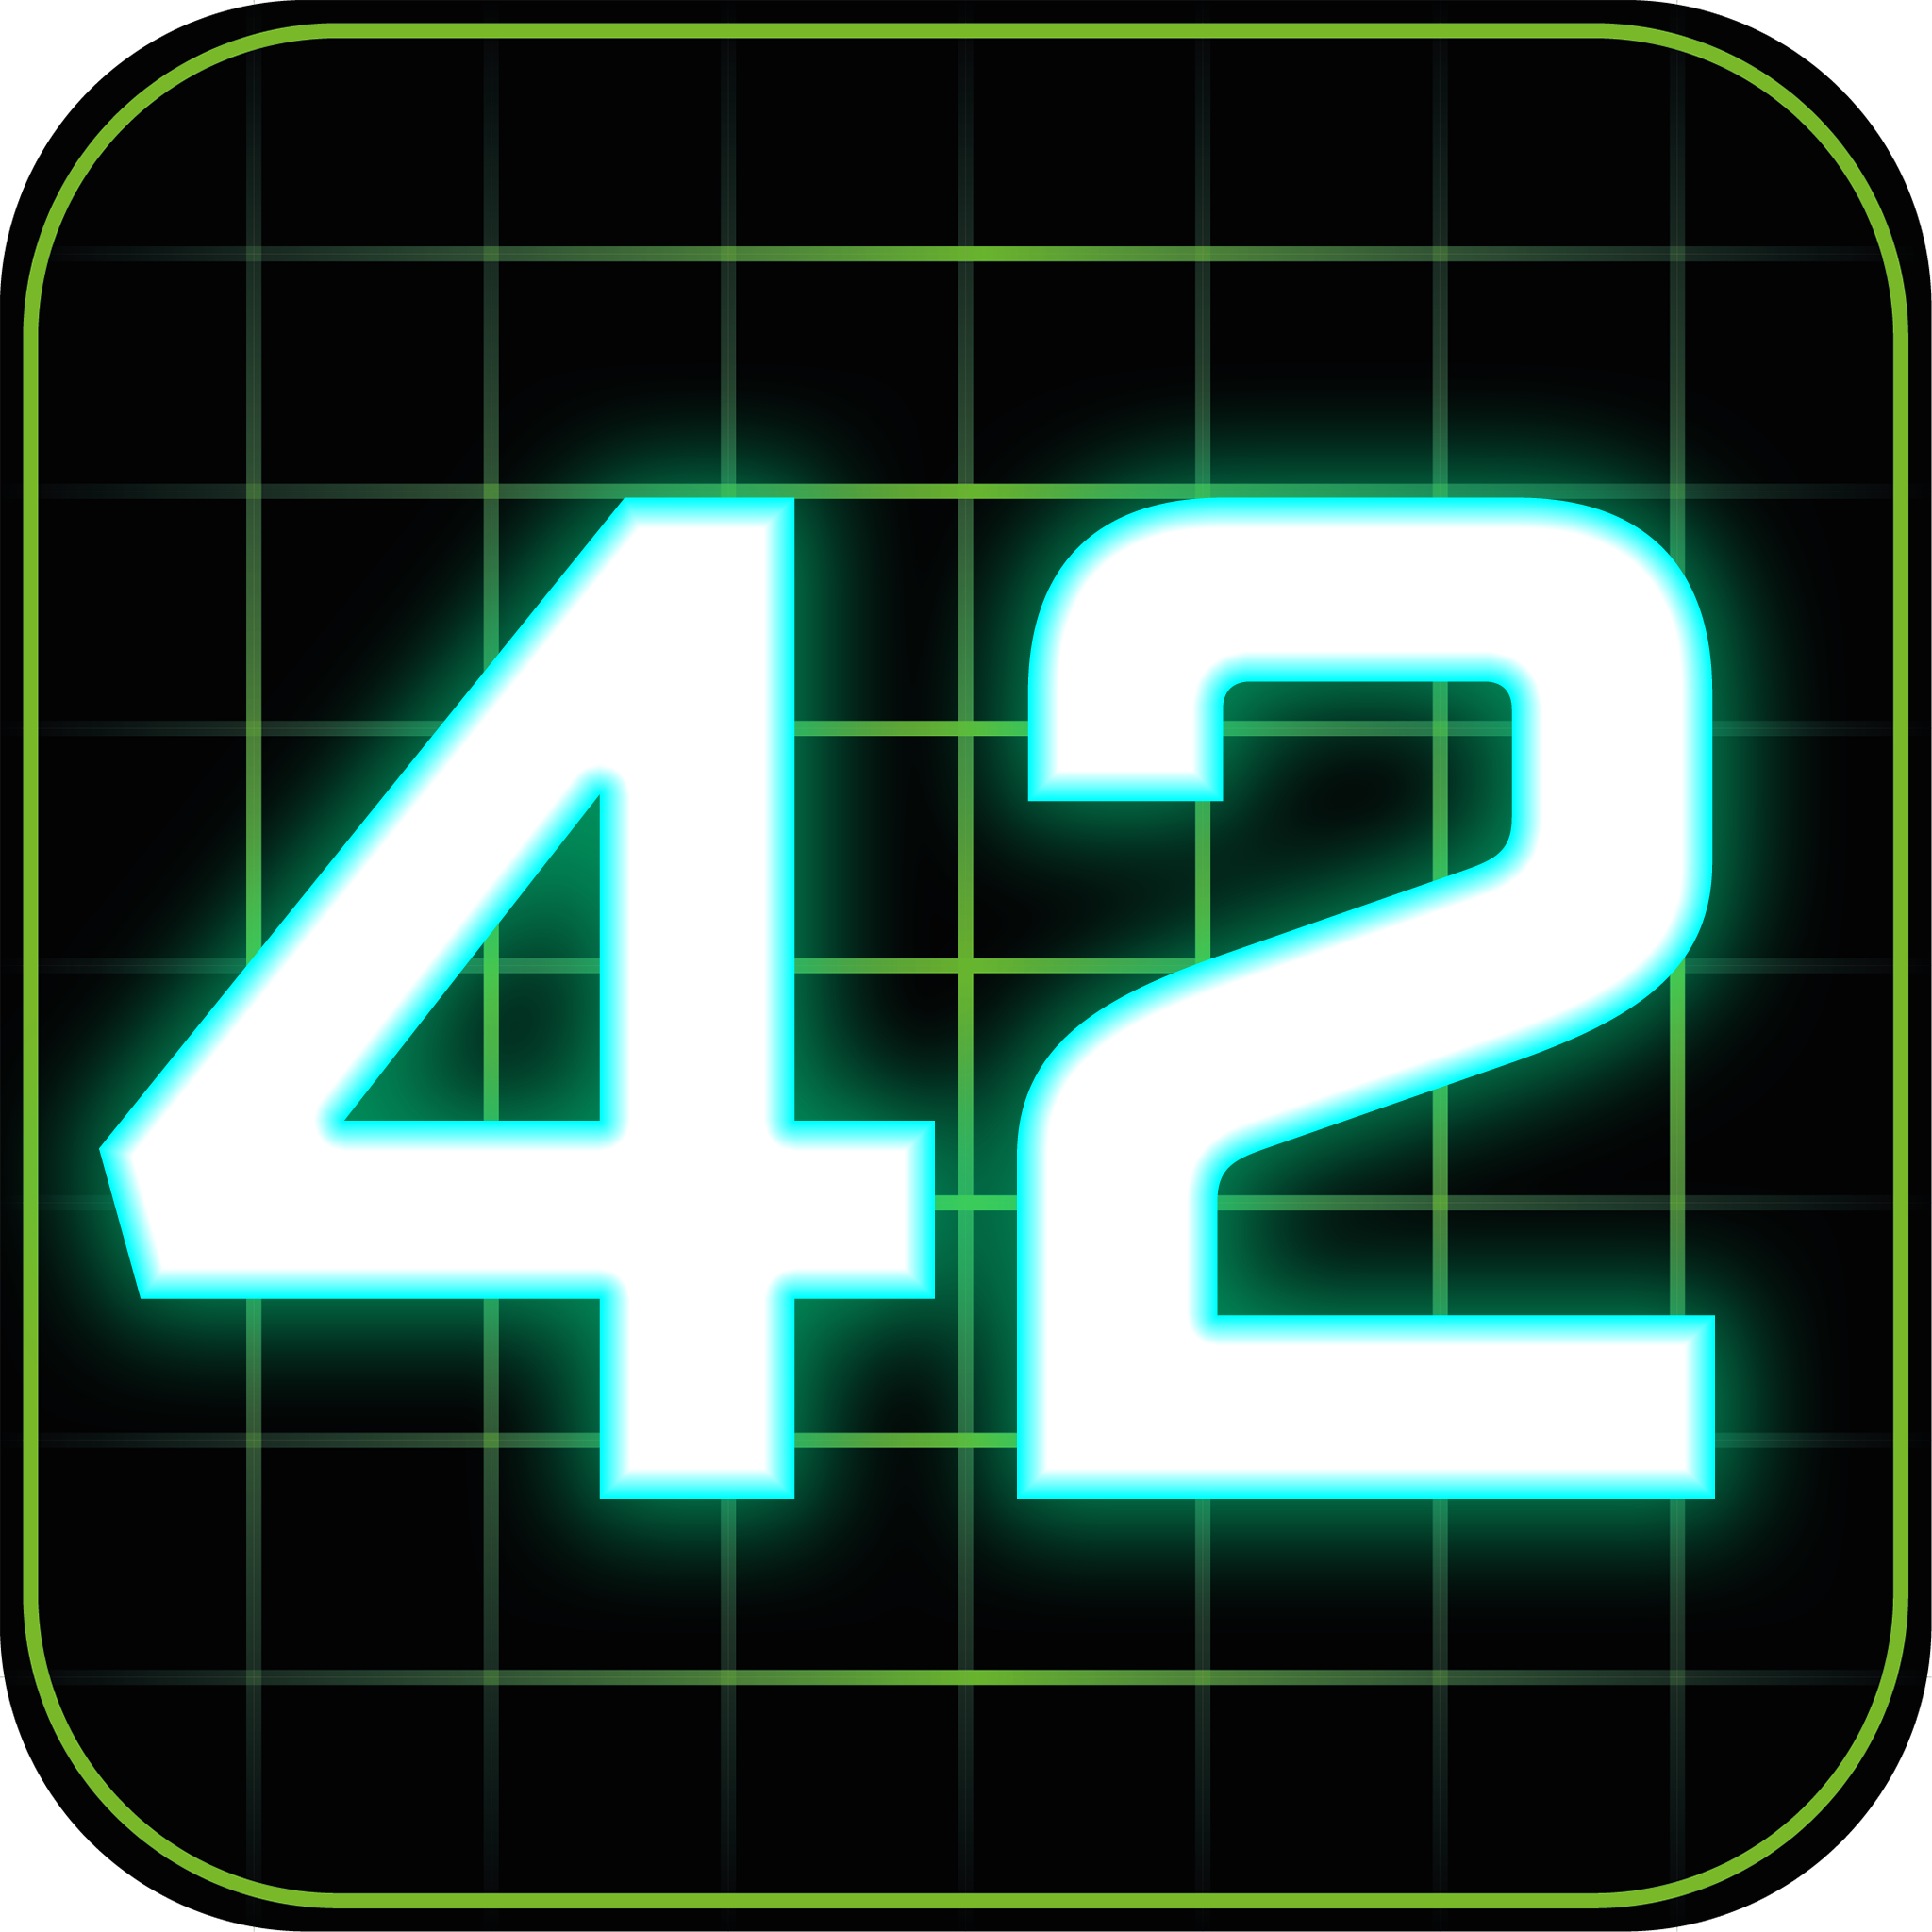 Logo of R42 a game I'm currently working on